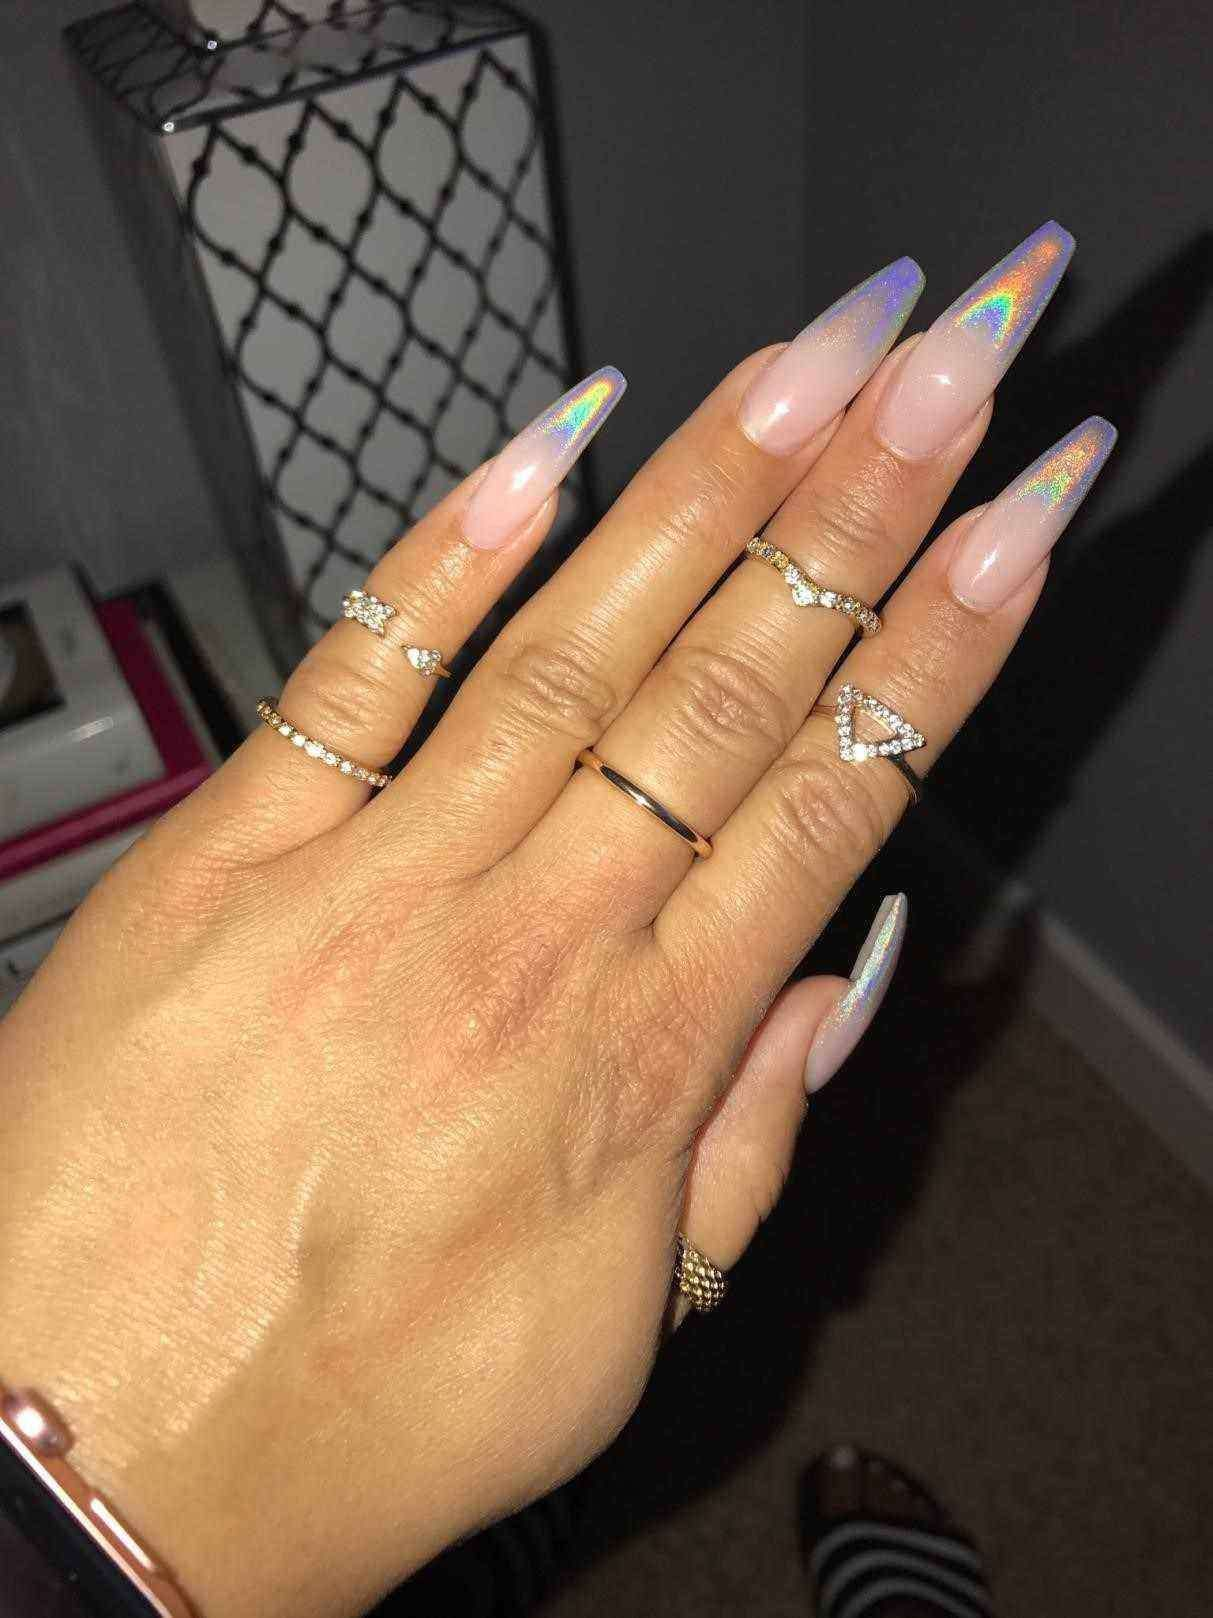 Camaxid Com Nbspcamaxid Resources And Information Acrylic Nails Coffin Holographic Nails Clear Glitter Nails